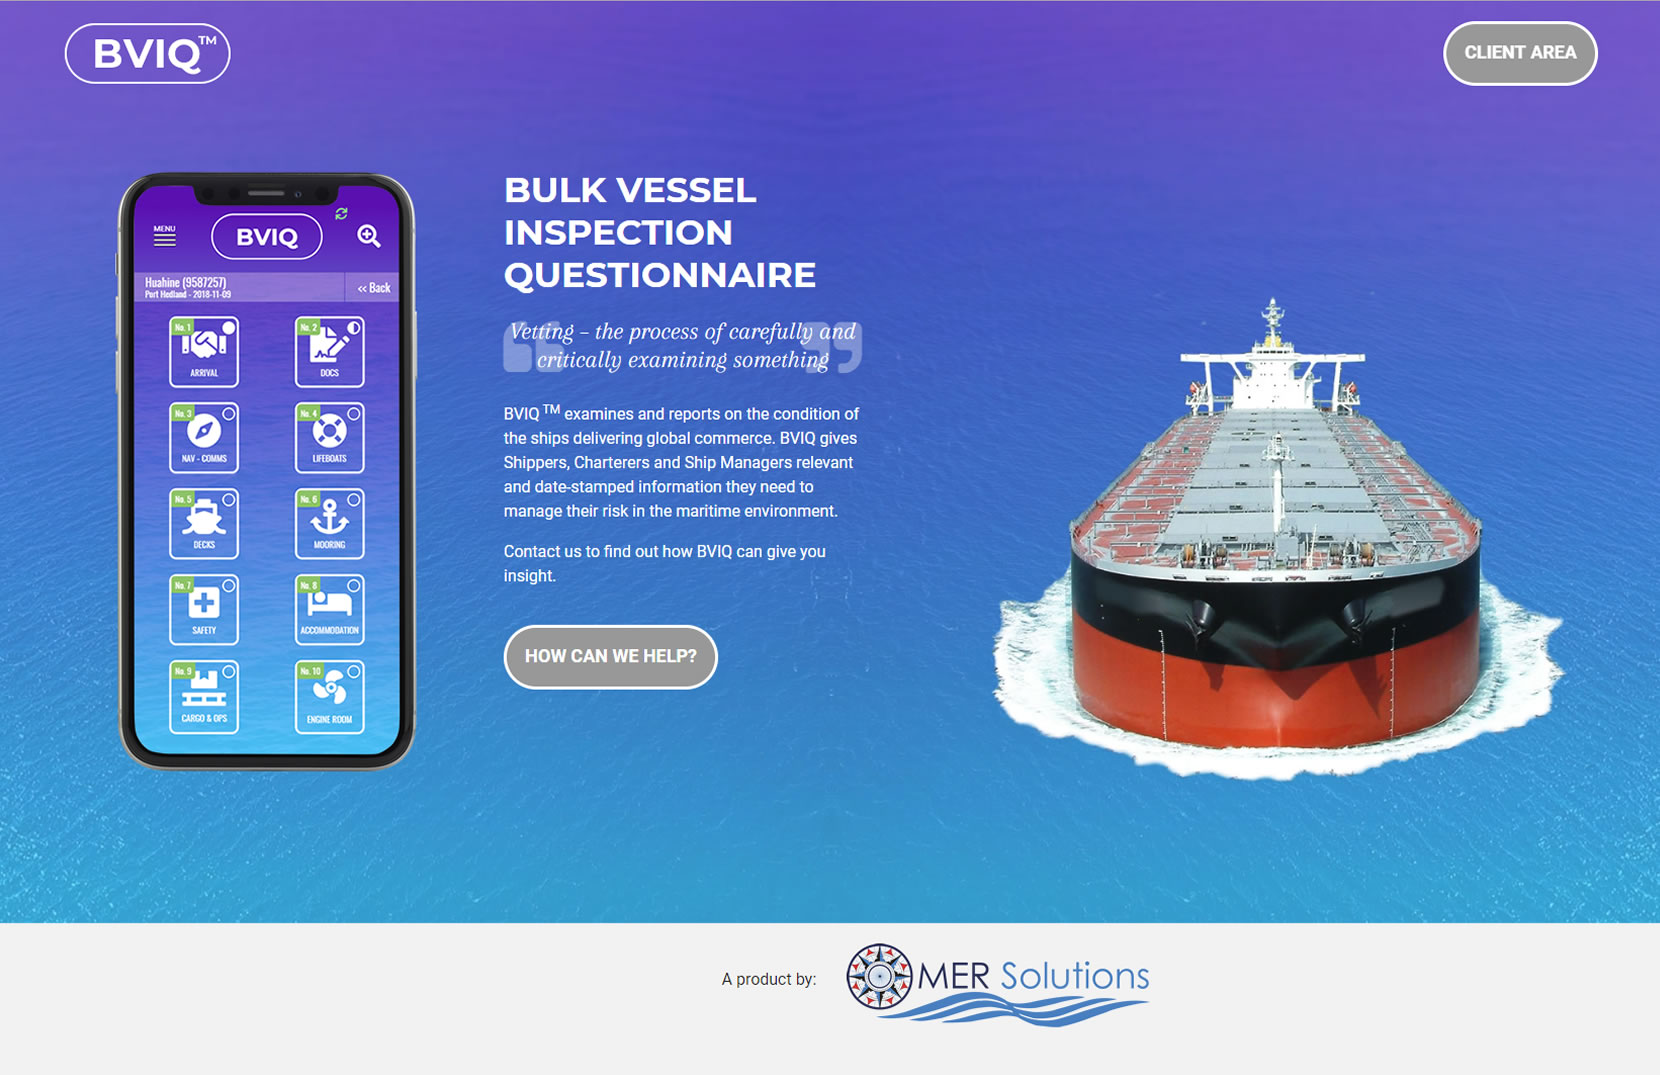 BVIQ Bulk Vessel Inspection Questionnaire